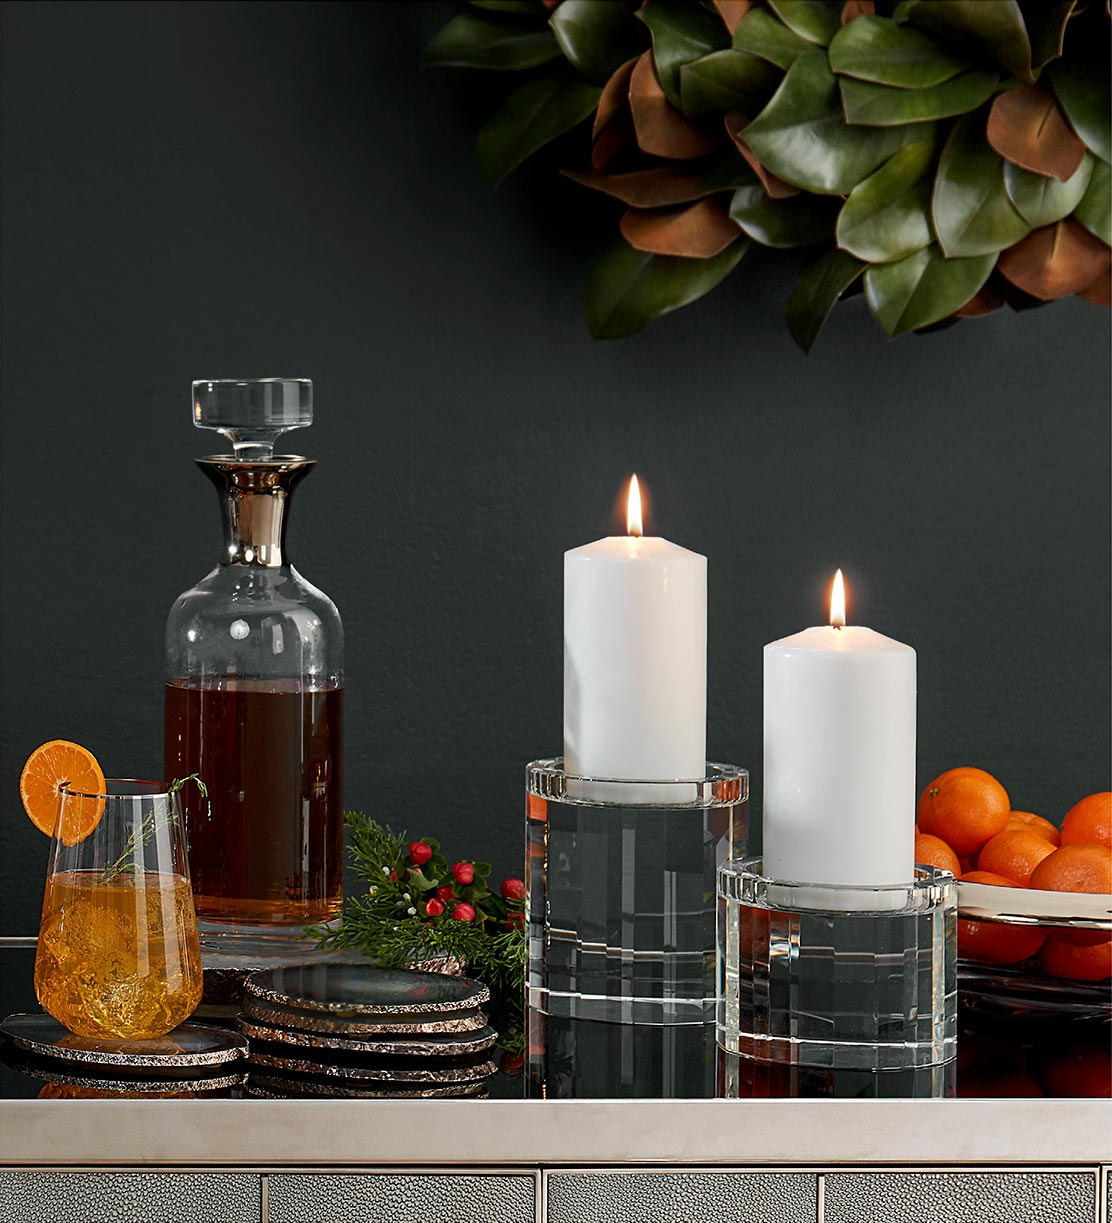 Mix of accessories, including a decanter and candles